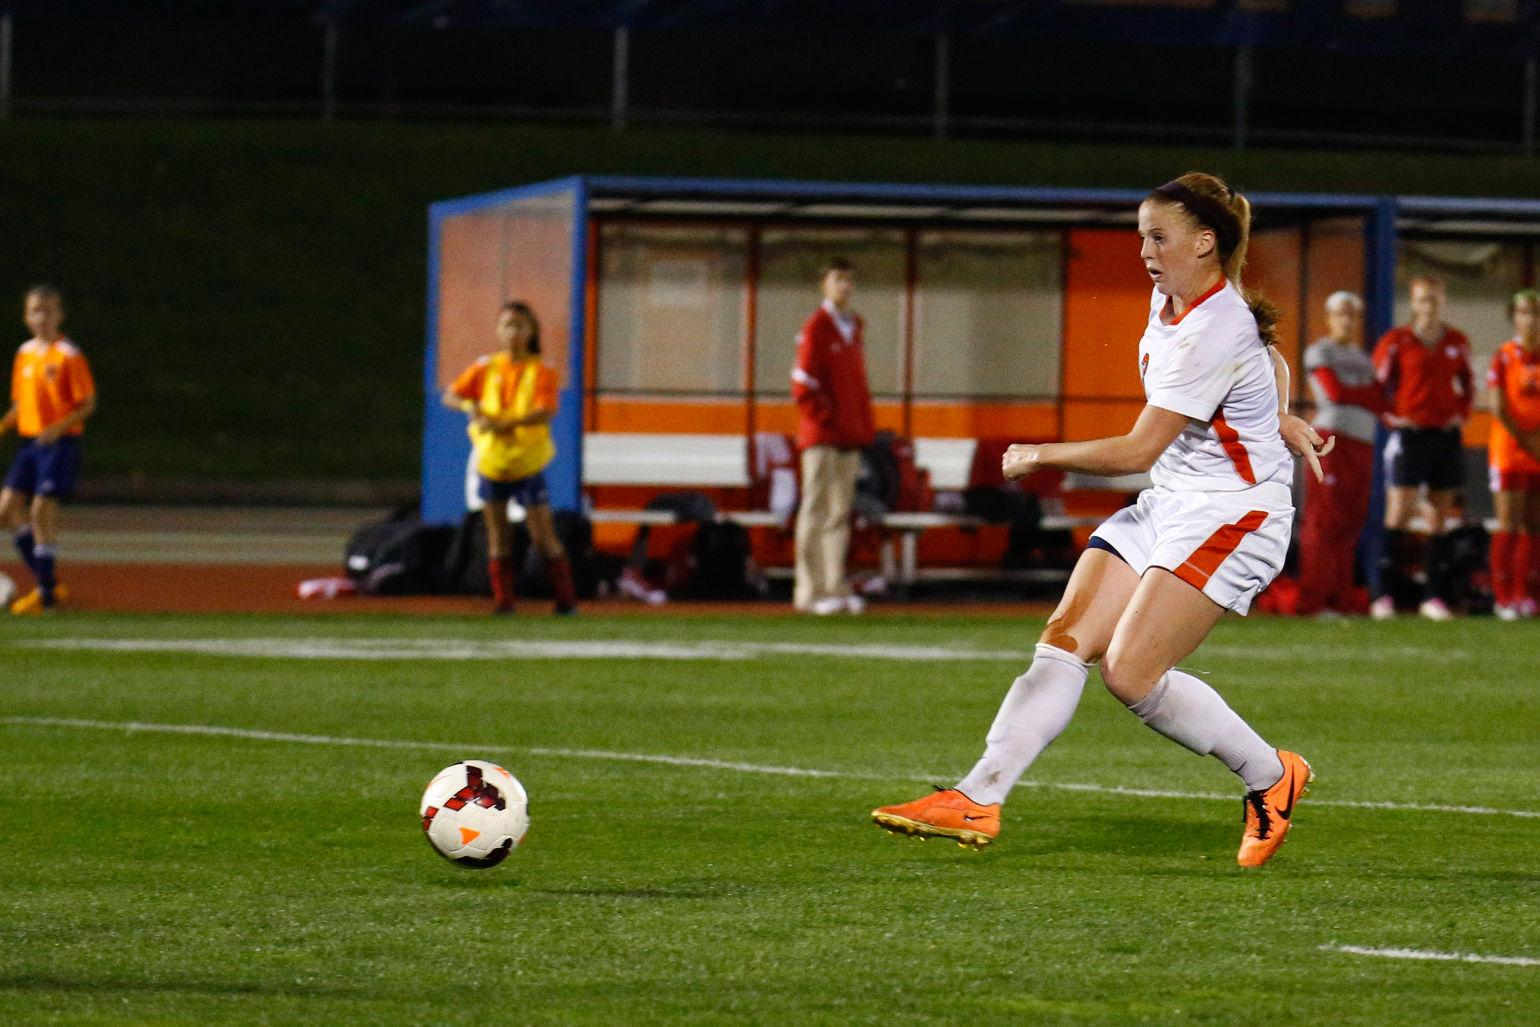 Illinois' Janelle Flaws scored all five Illini goals on the weekend in a pair of victories over Purdue and Indiana. The senior striker has now scored a Big Ten-leading 11 goals in 10 games so far this season.